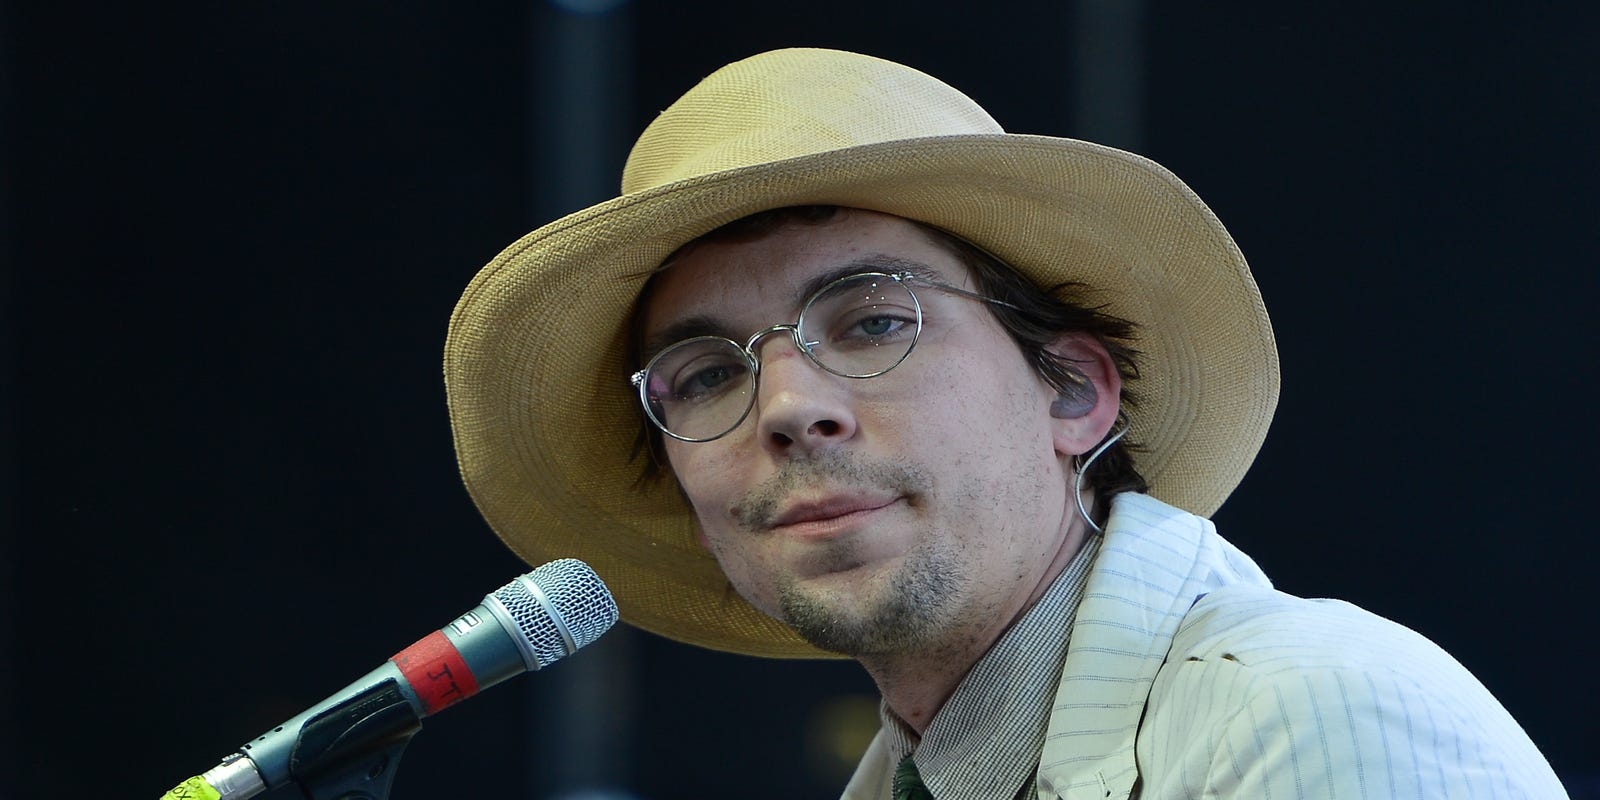 Singer-songwriter Justin Townes Earle dead at age 38